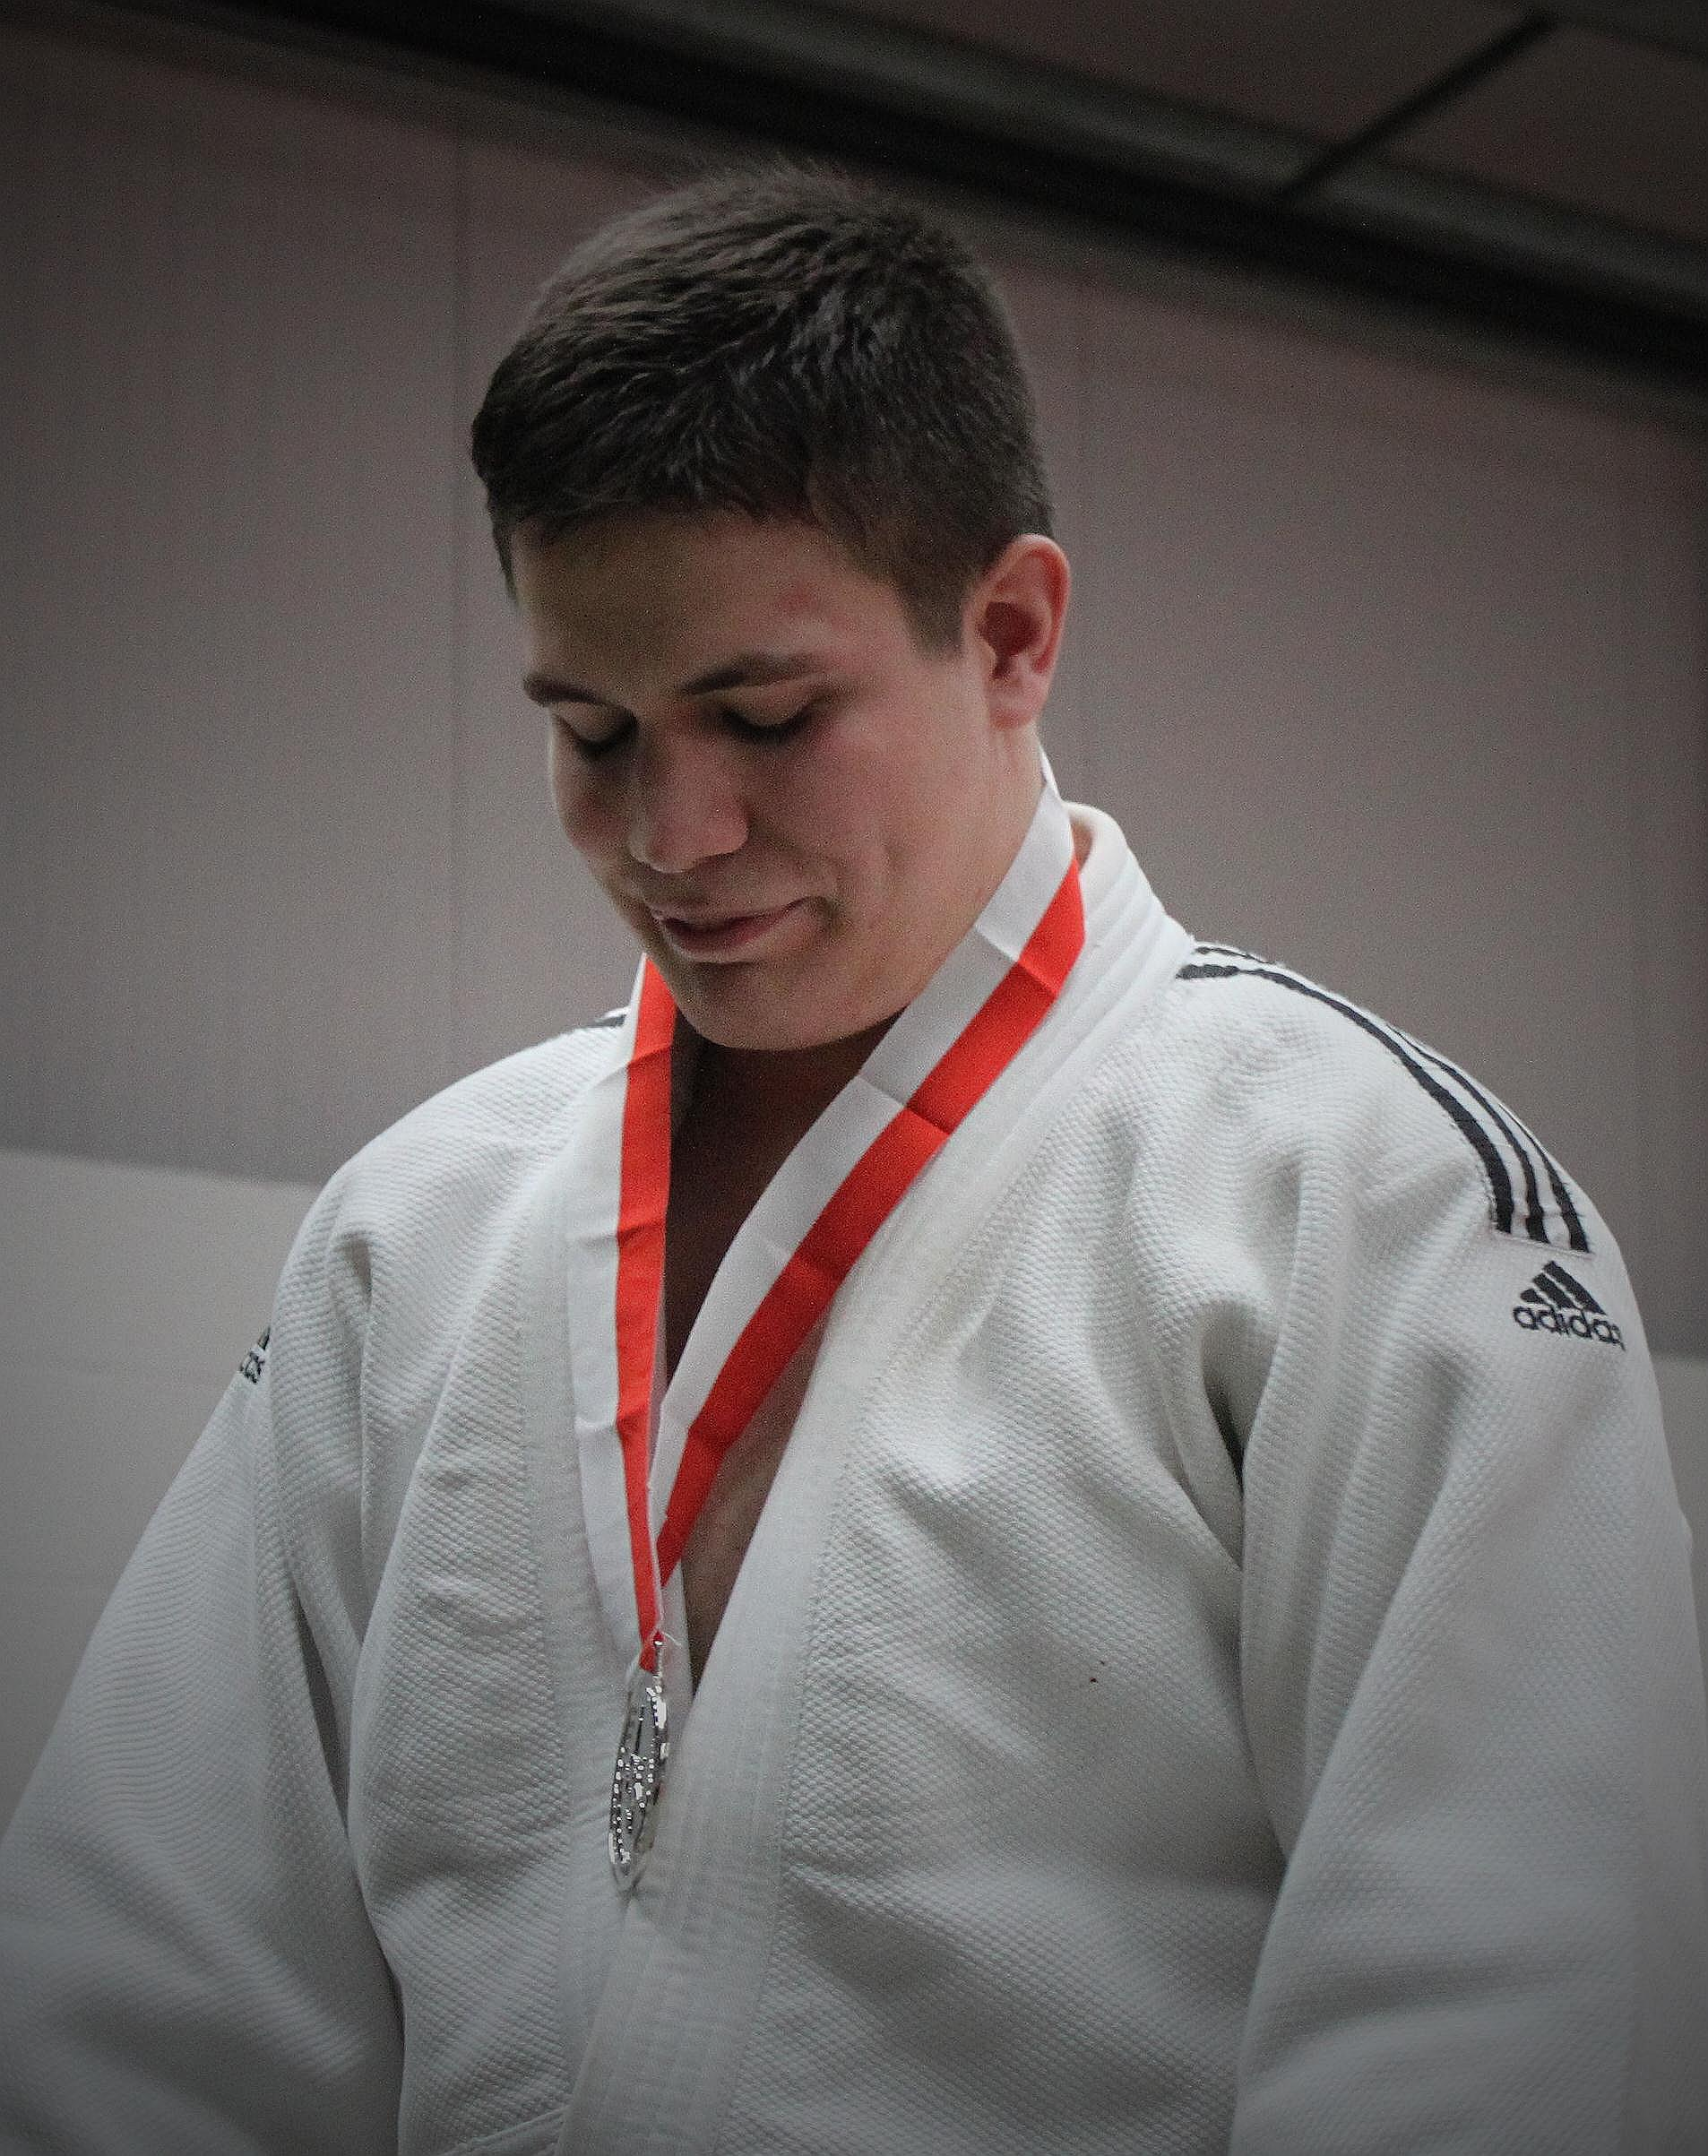 Ben Newbury won gold for Samurai.